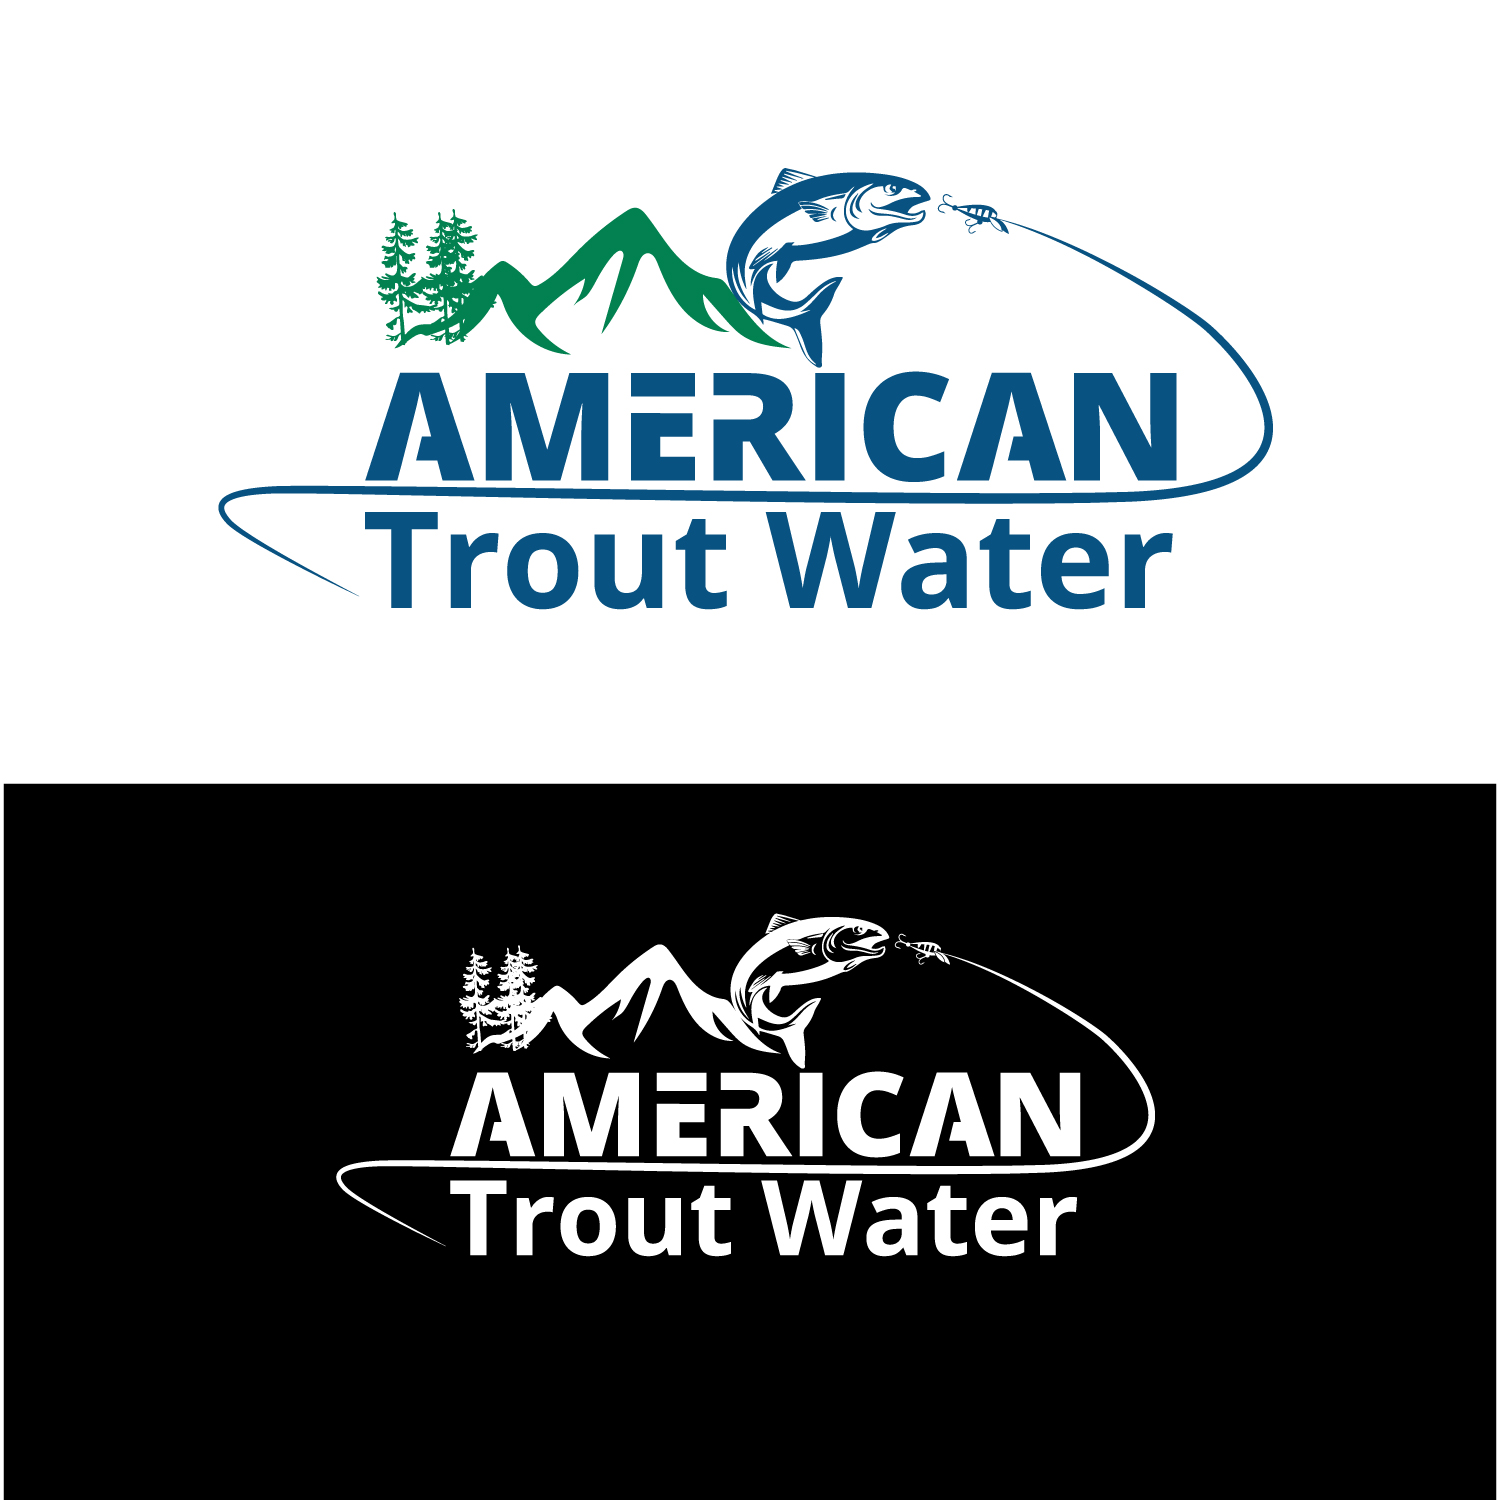 Logo Design by Bac Huu - Entry No. 52 in the Logo Design Contest American Trout Water Logo Design.